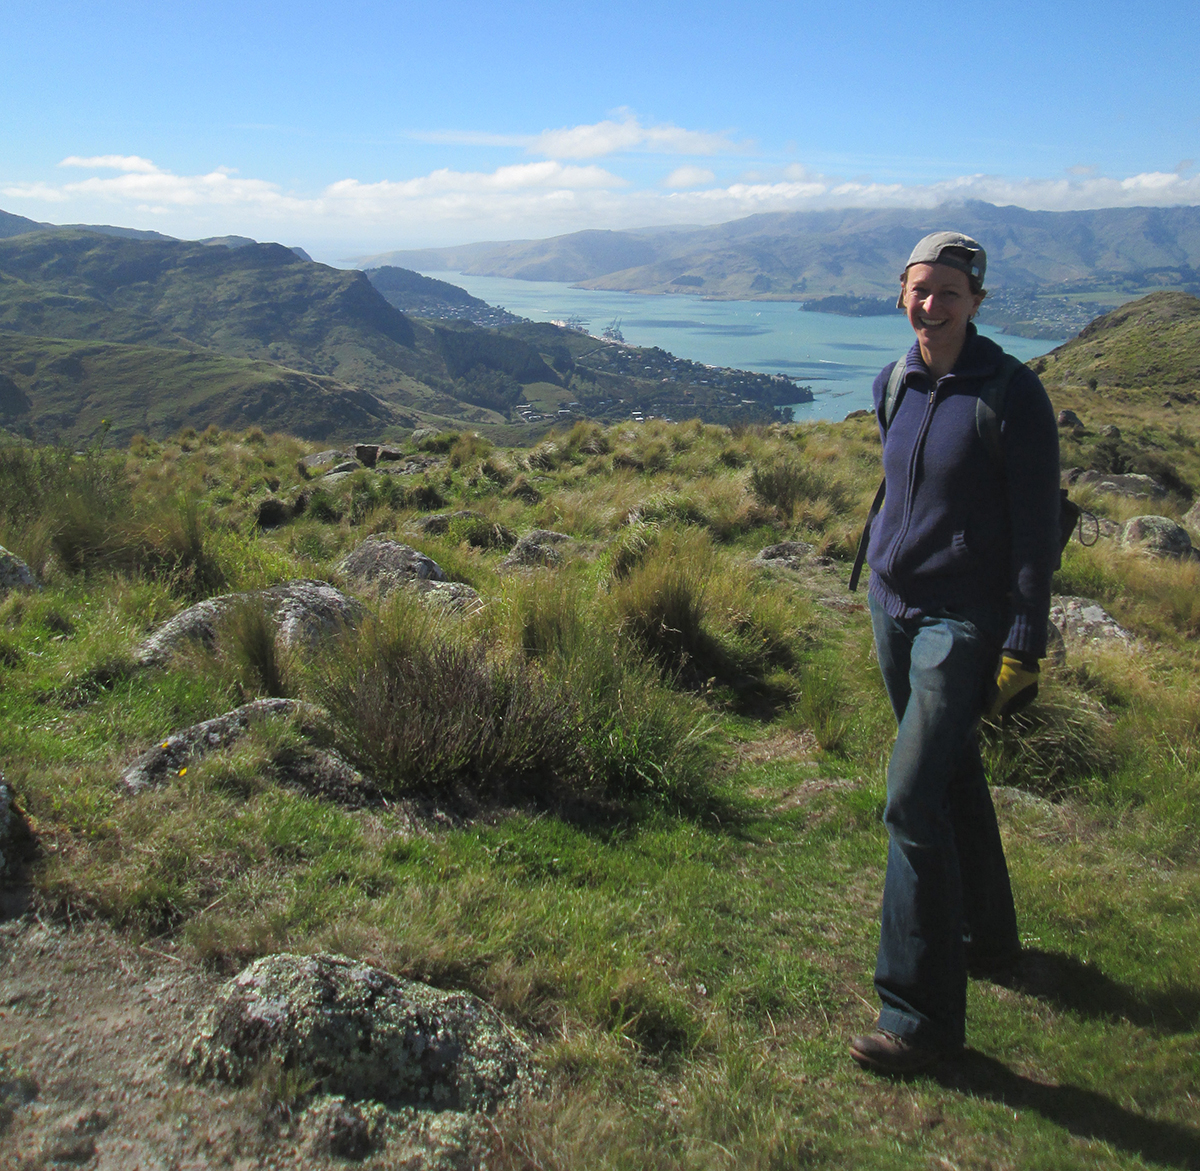 Up in the Port Hills around Lyttelton Harbour